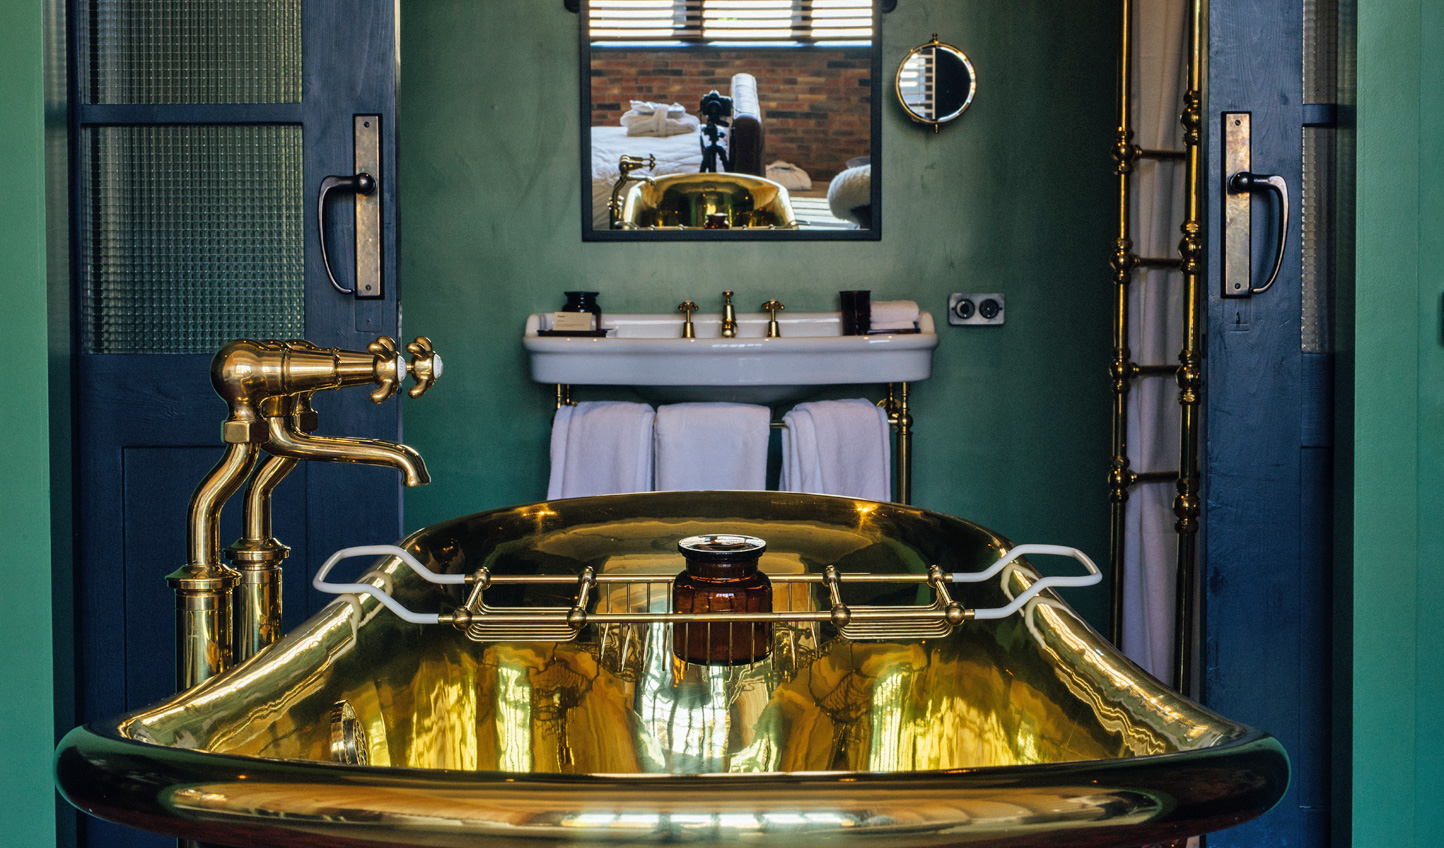 Sink into a deep bathtub in the quirky bathrooms